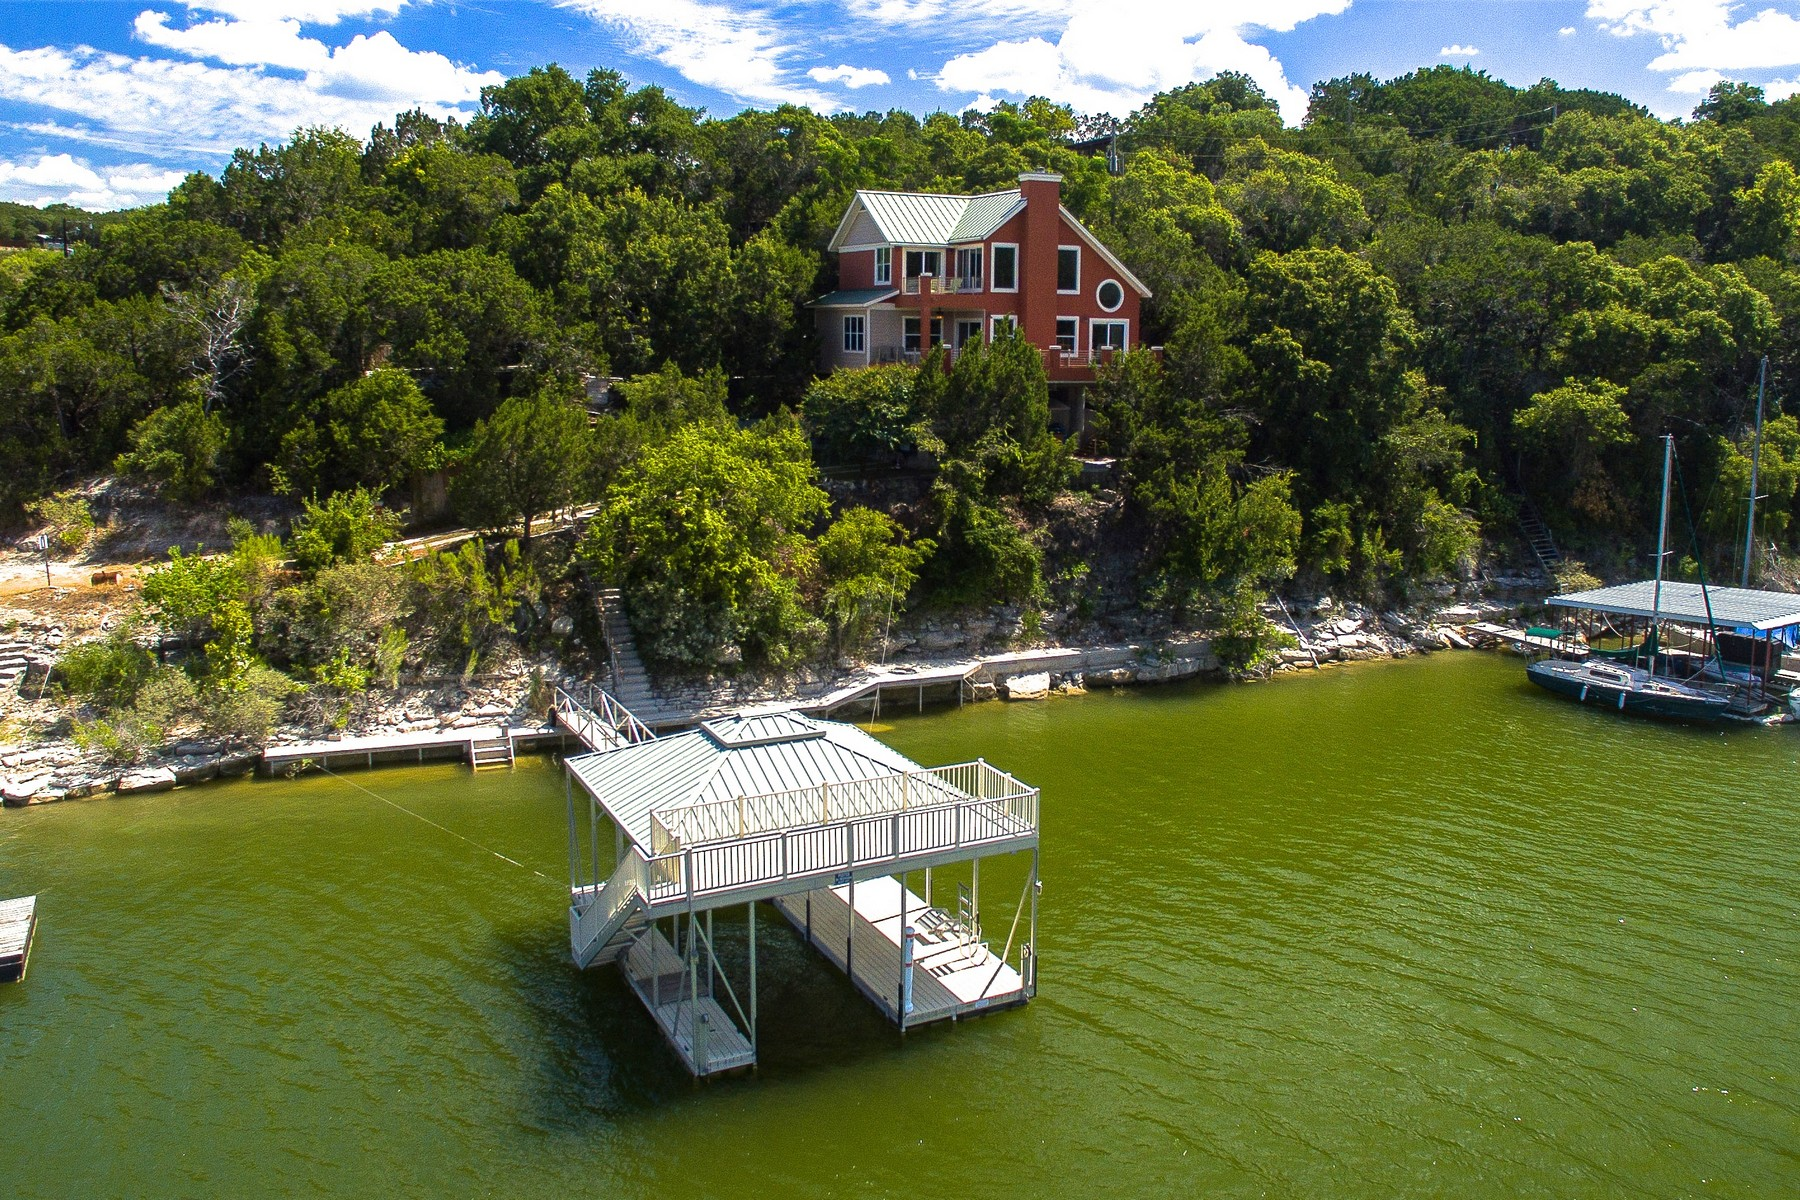 Casa Unifamiliar por un Venta en Private Waterfront Retreat on Lake Travis 4012 Beach Rd Lago Vista, Texas 78645 Estados Unidos